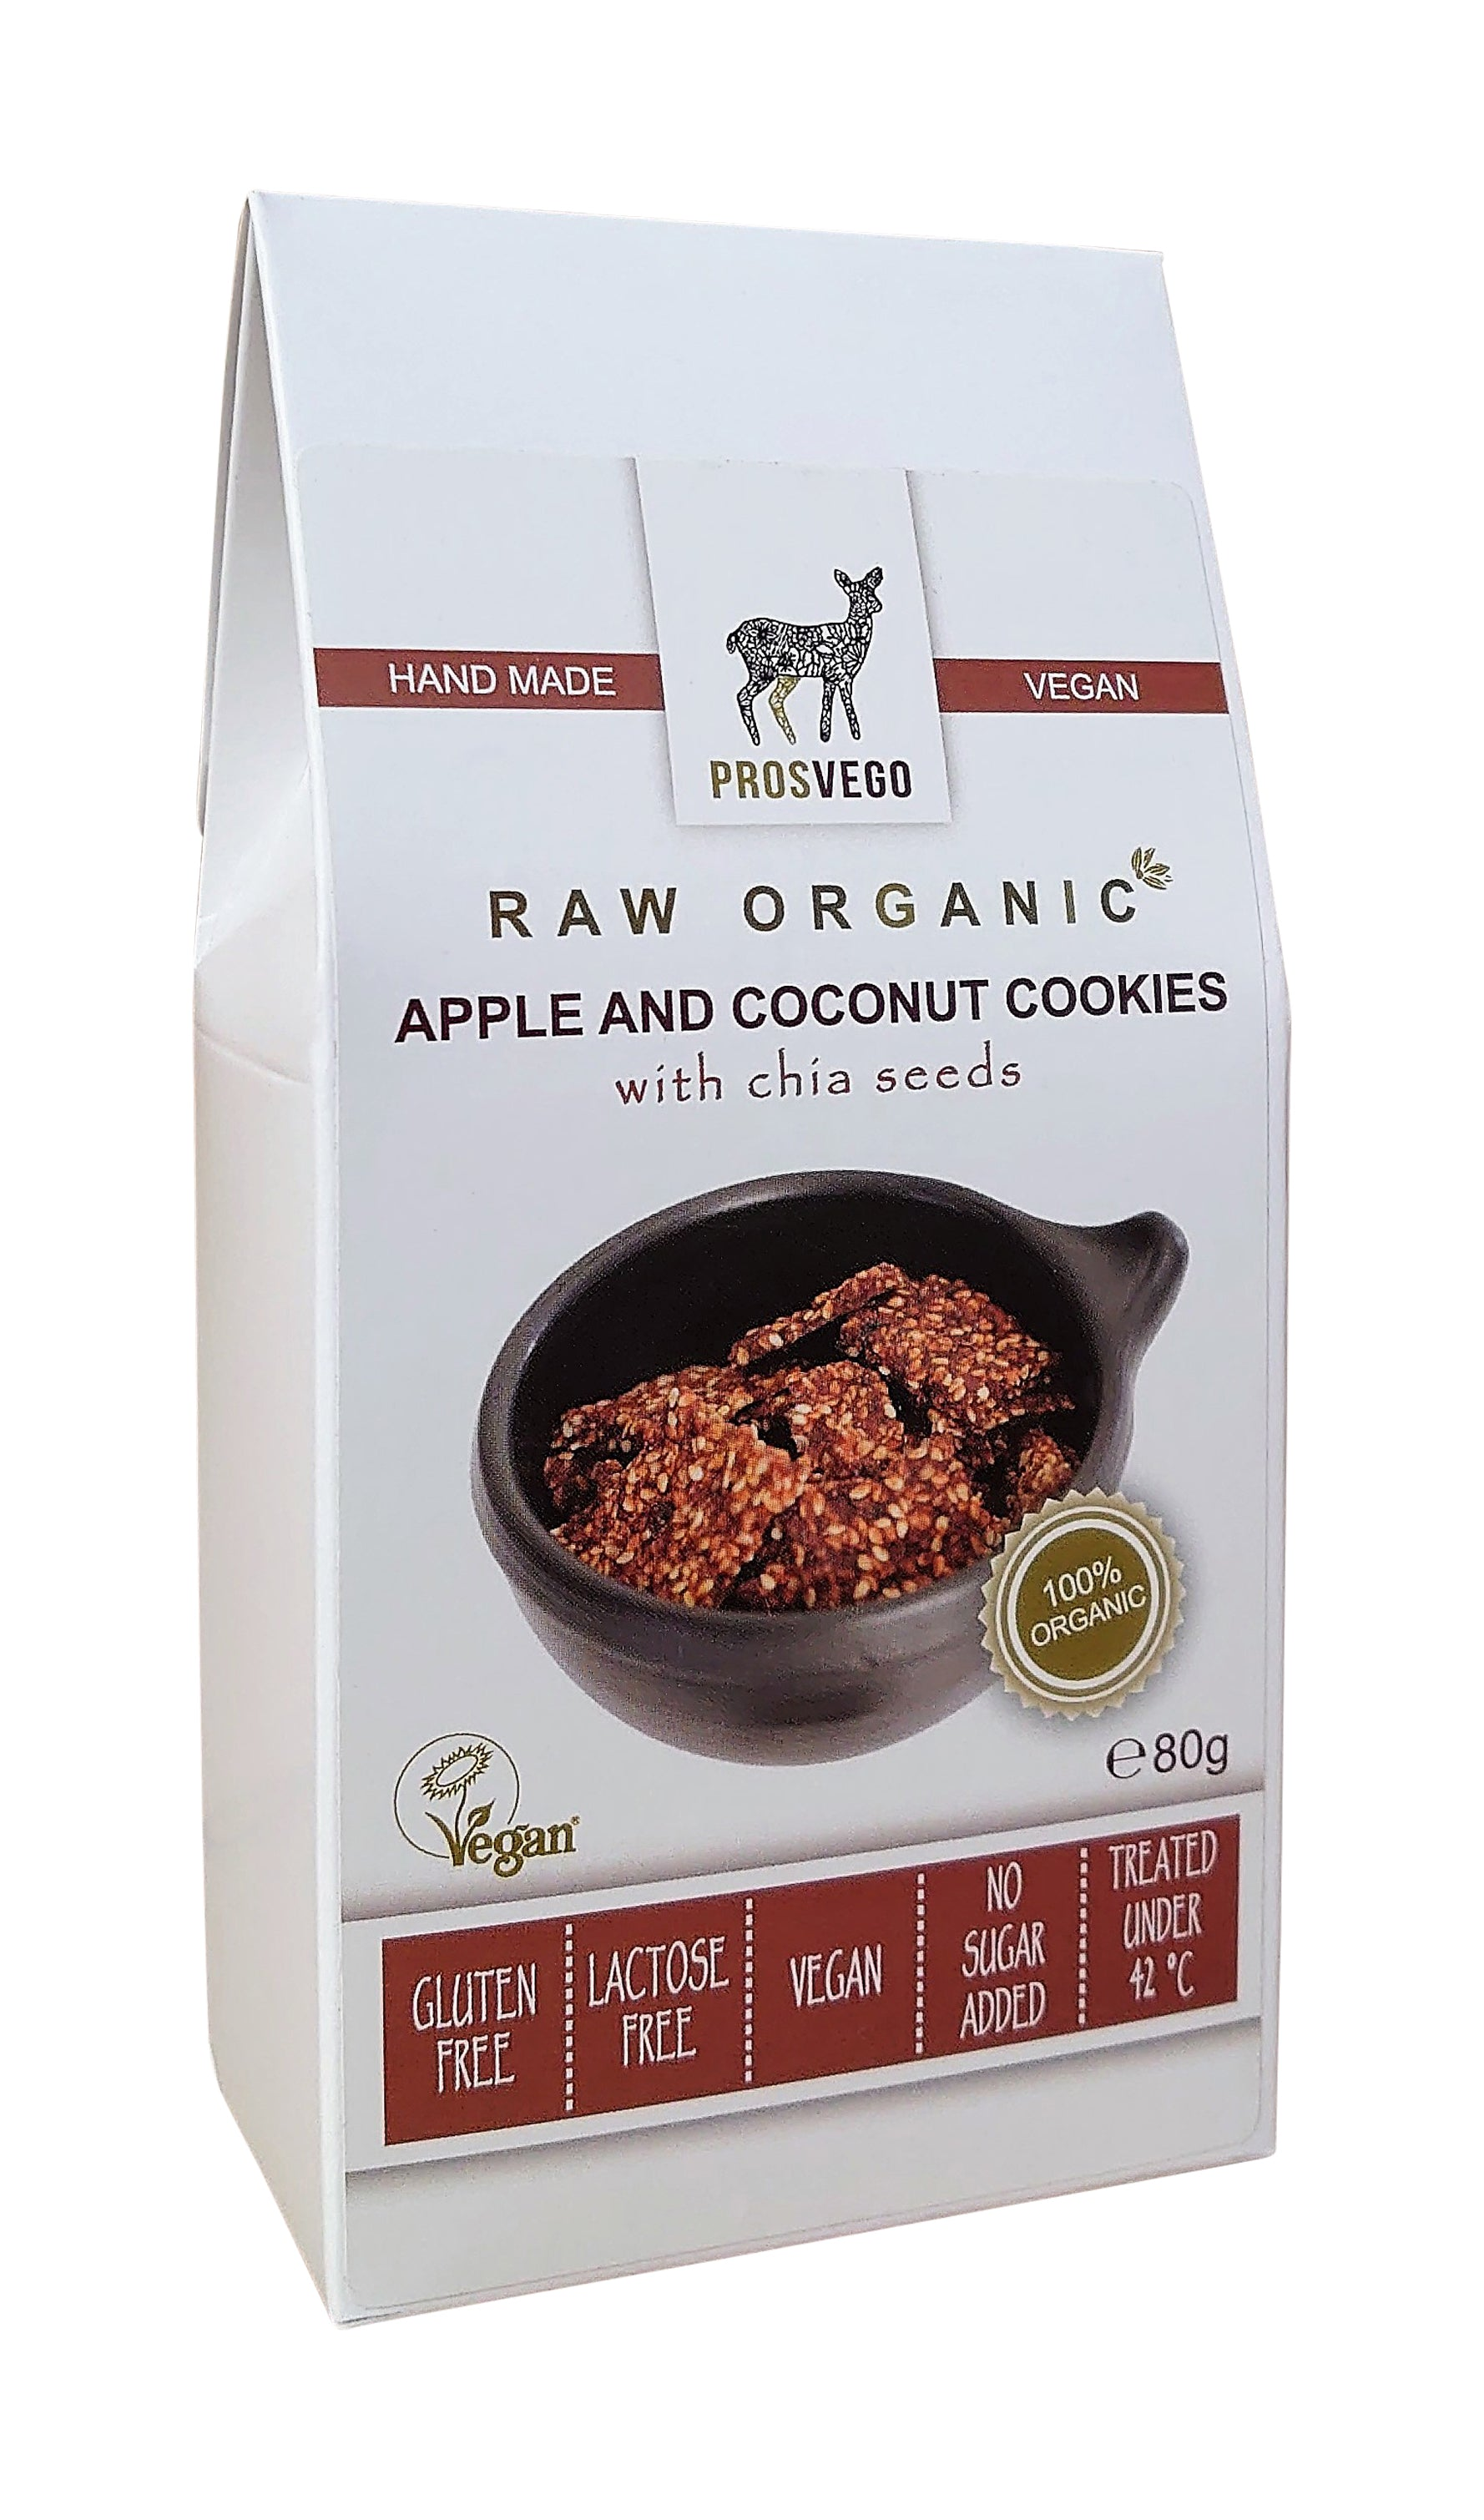 Raw Organic Apple and Coconut Cookies with chia seeds